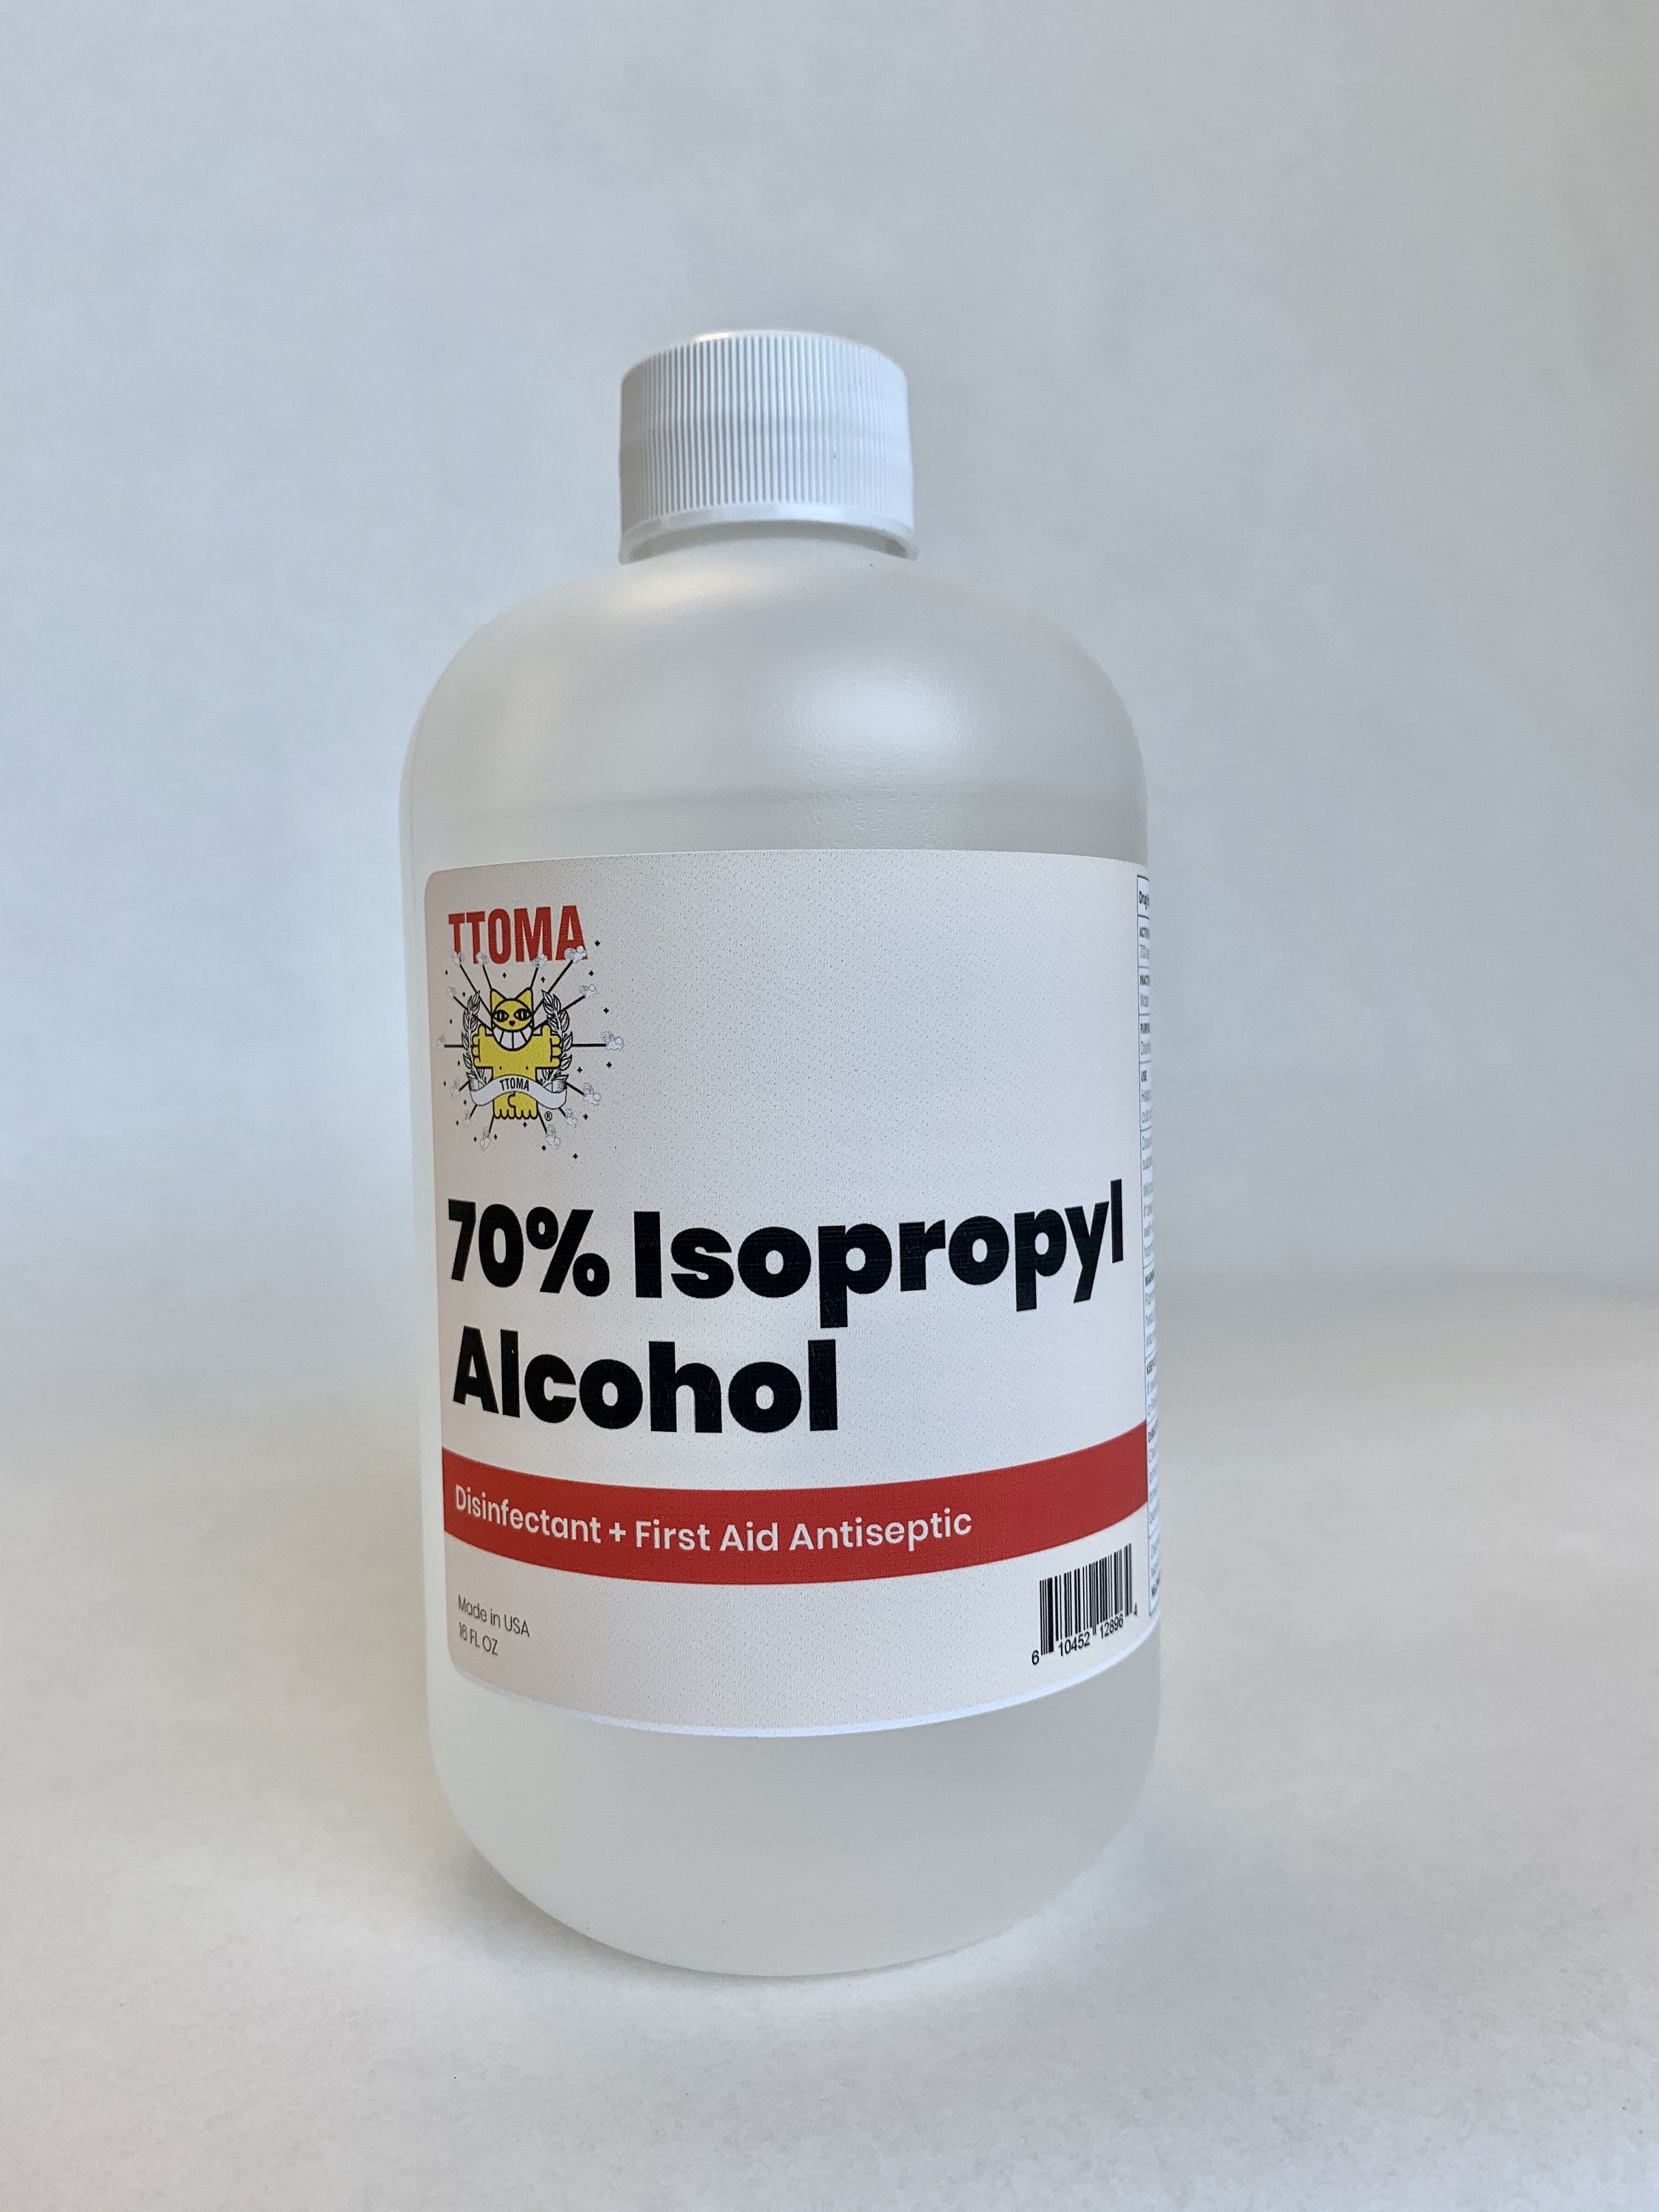 Ttoma Brand 70 Isopropyl Alcohol Disinfectant Spray 16